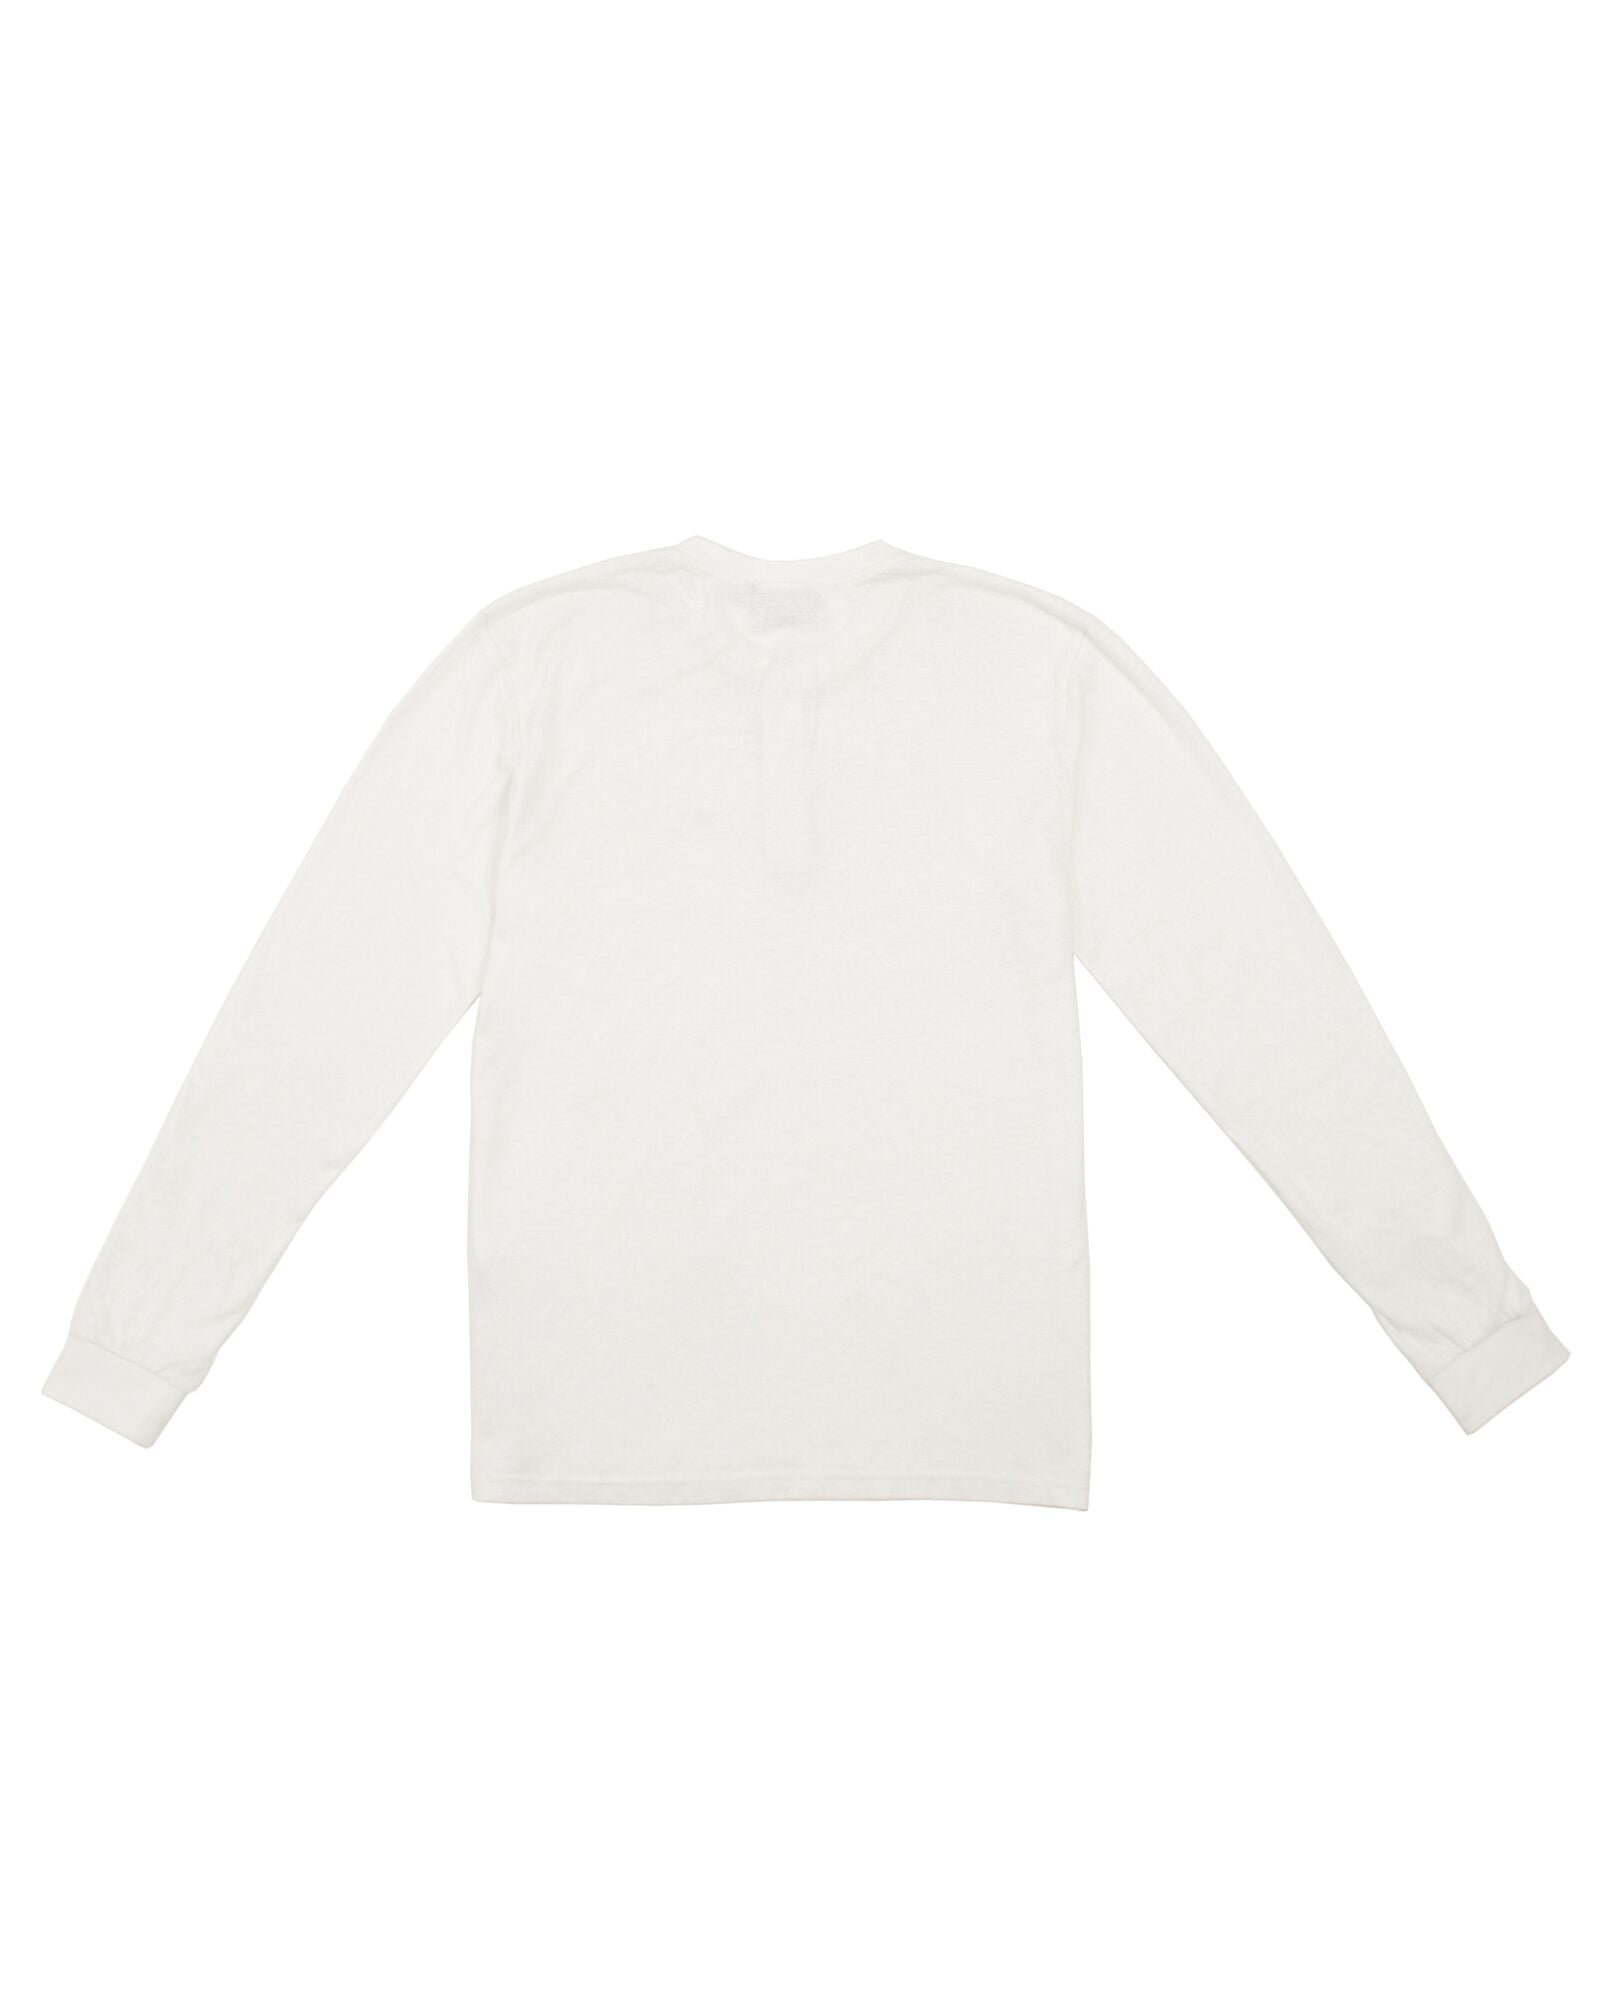 Hemp Henley LS T-Shirt